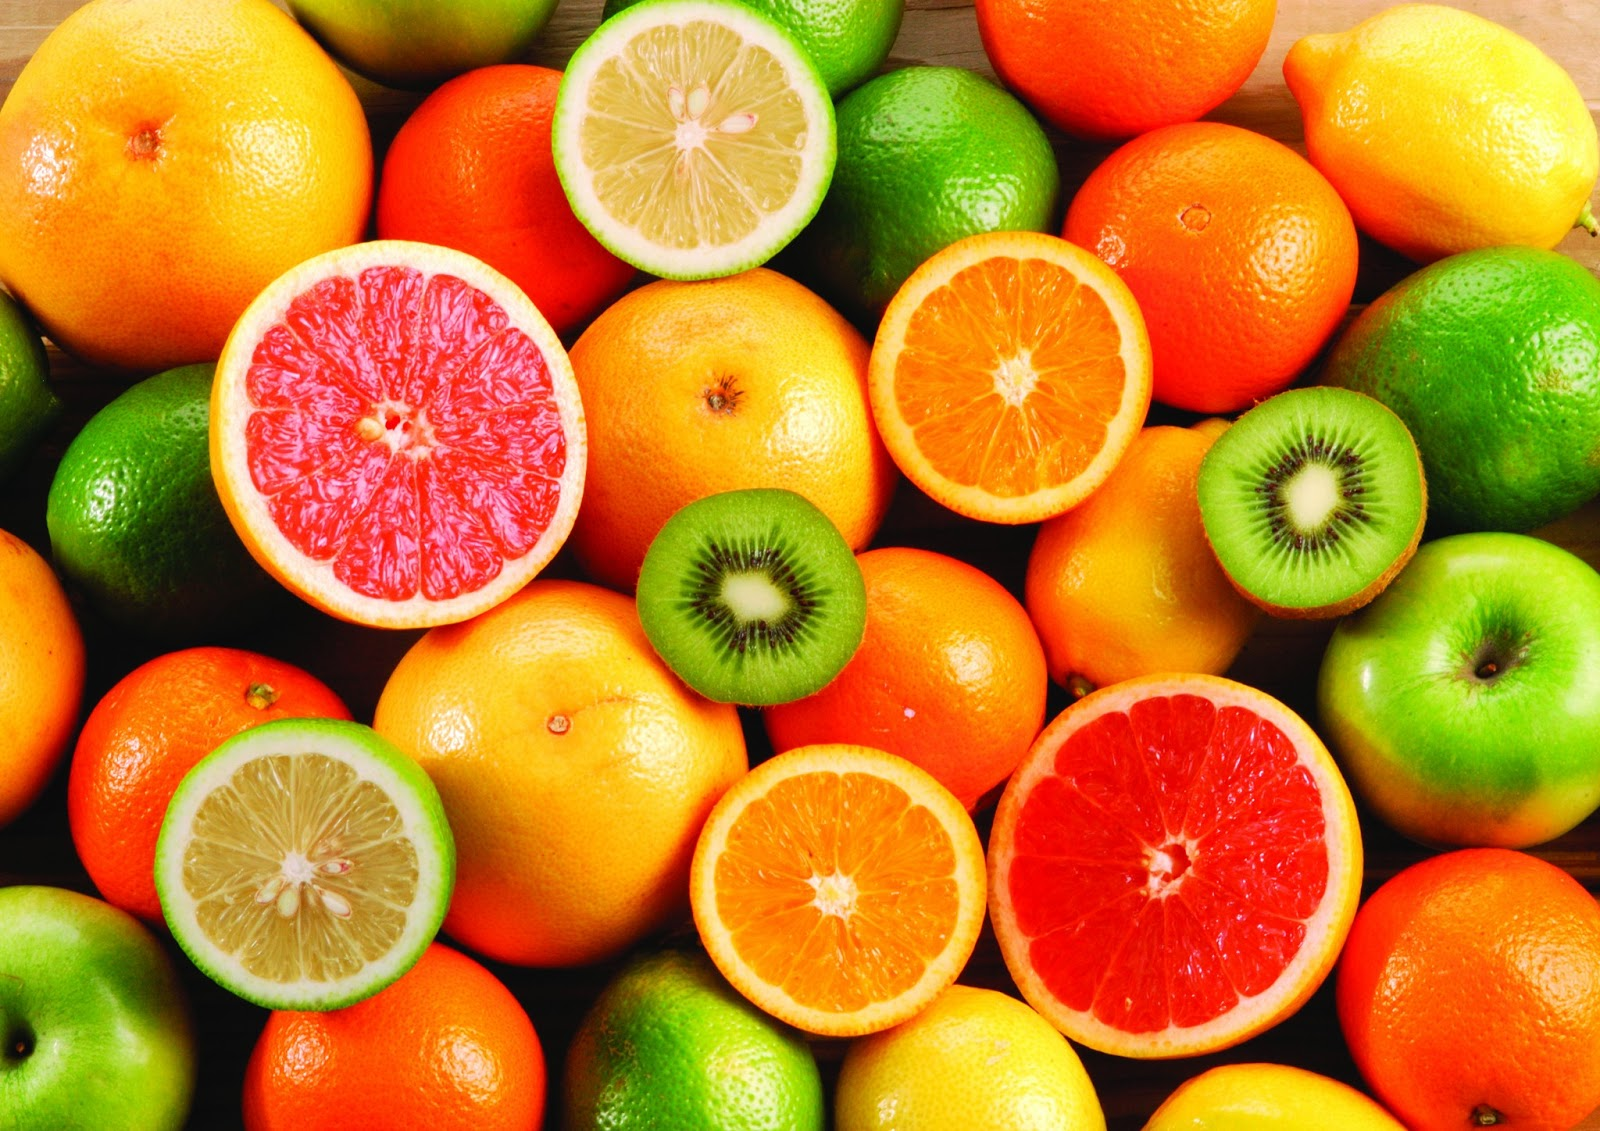 Fruits hd images - Free Download Desktop Wallpaper Backgrounds Hd